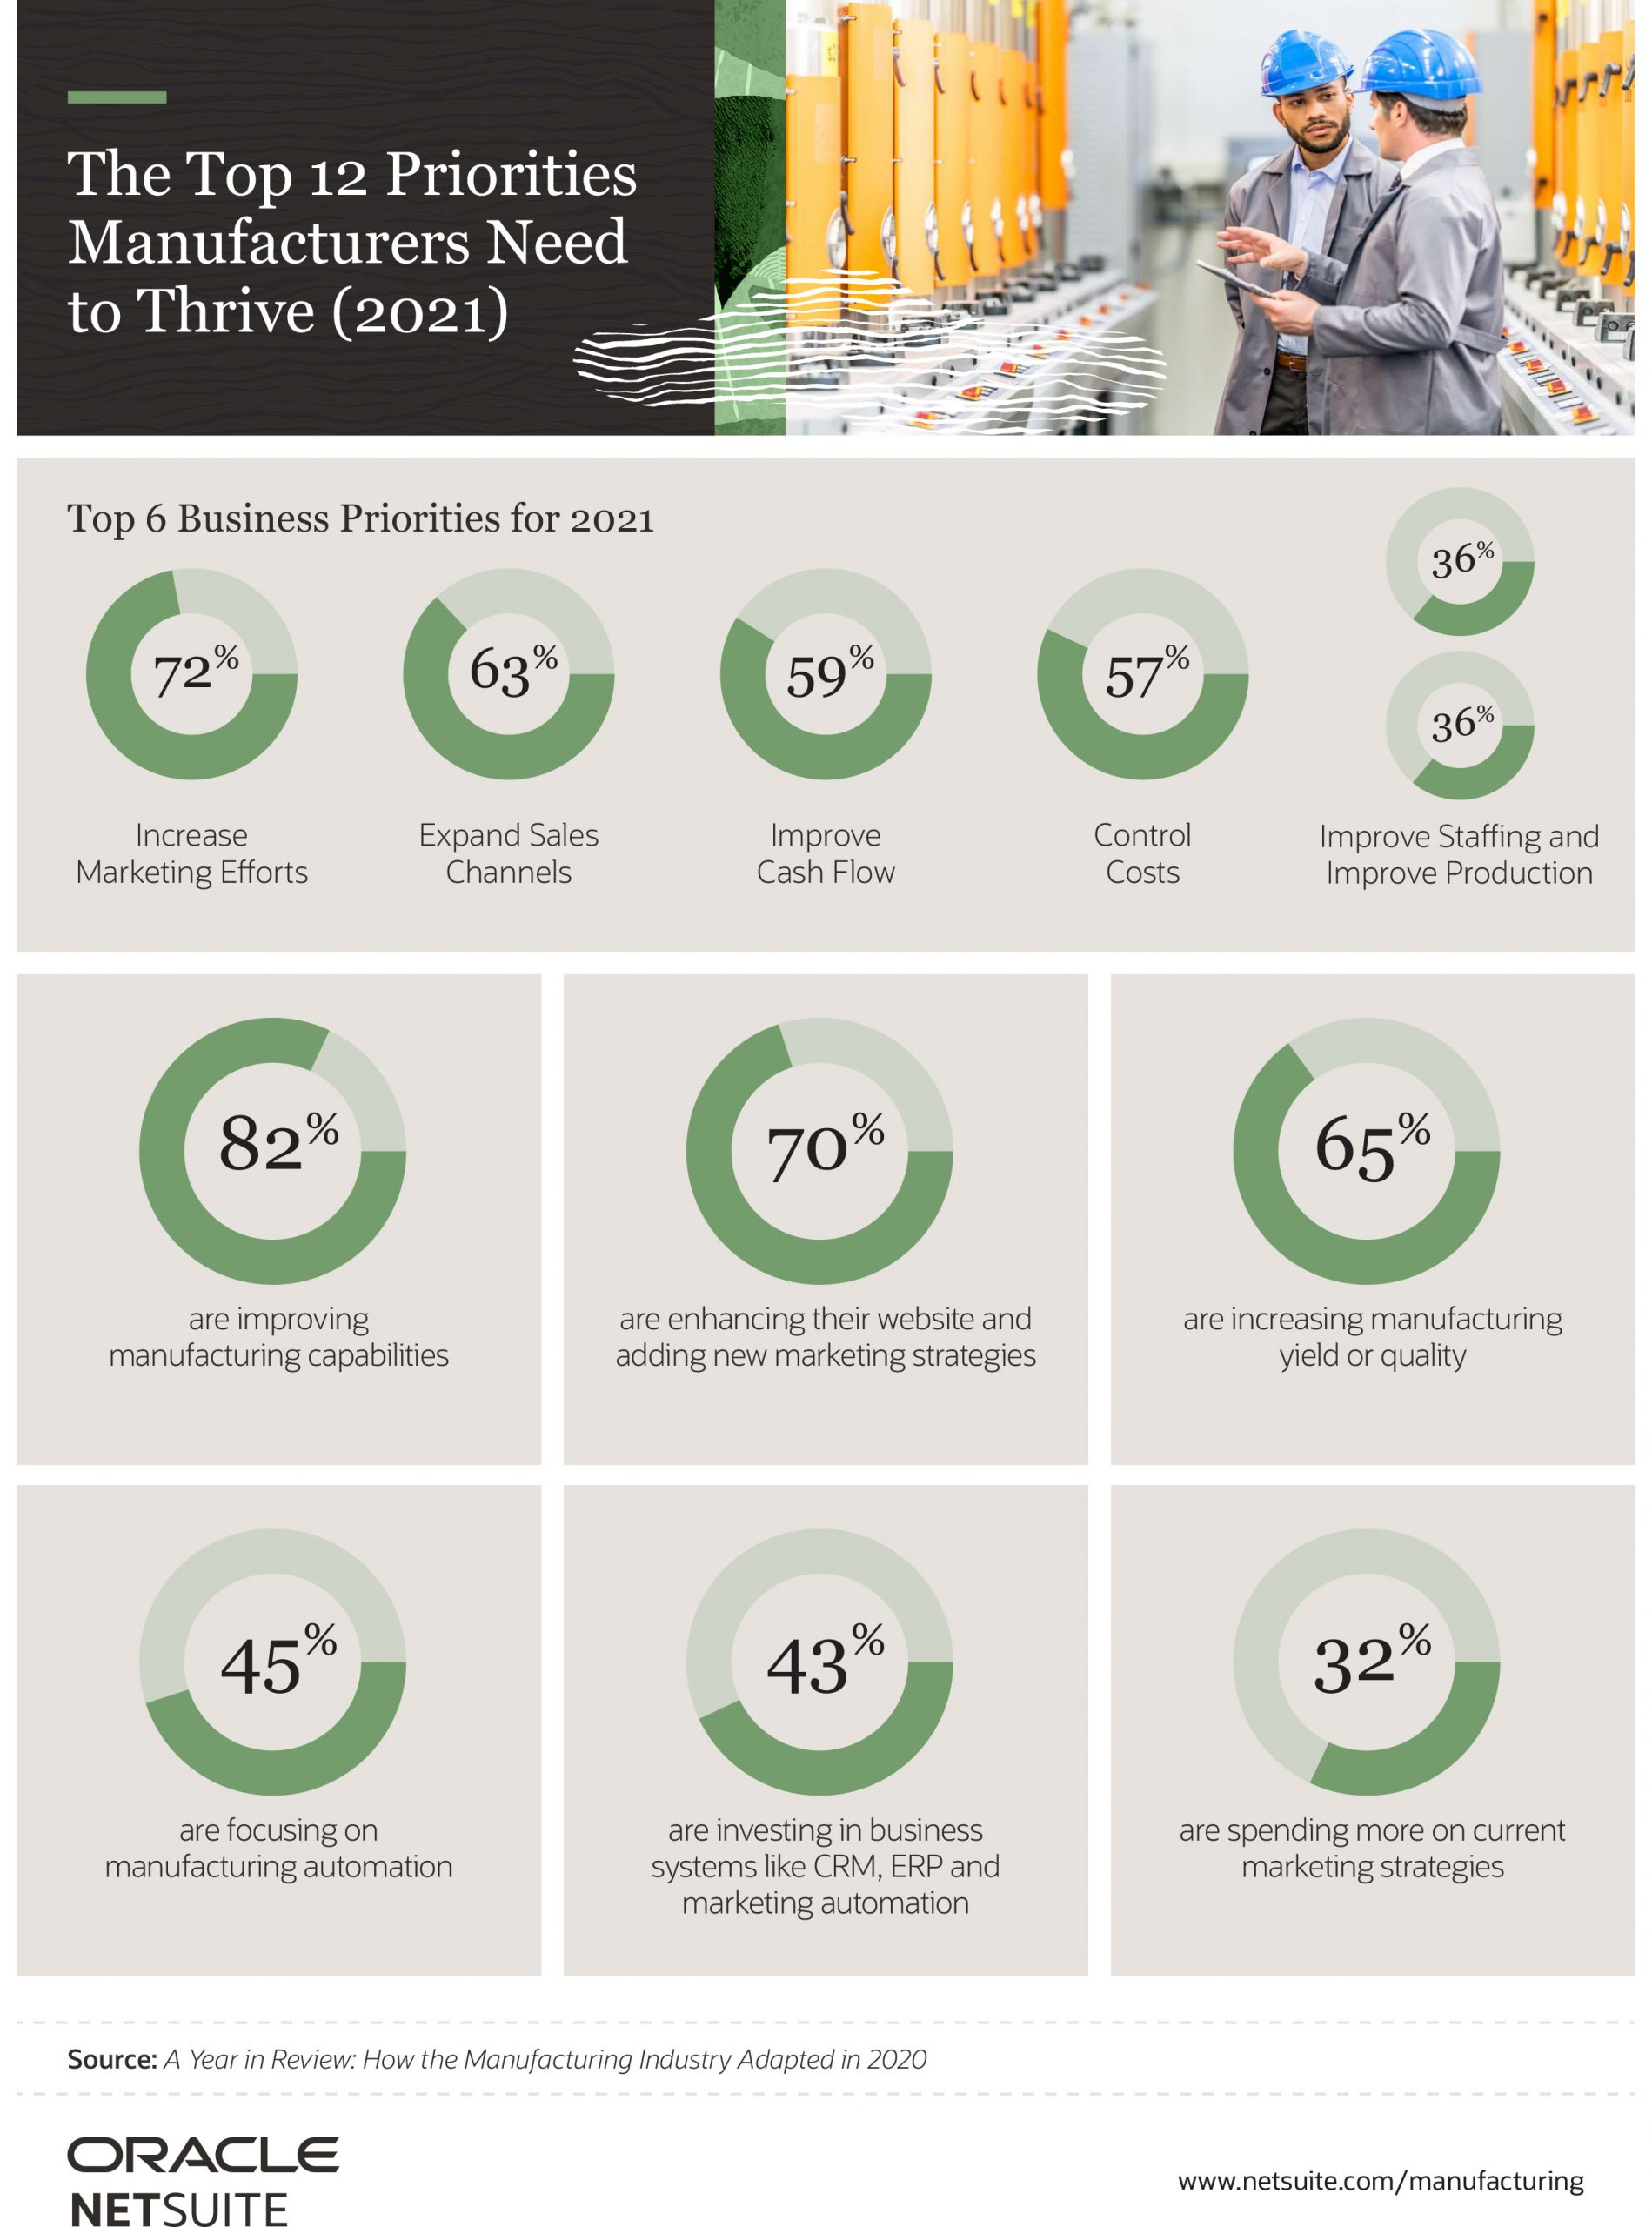 The top 12 priorities manufacturers need to thrive in 2021